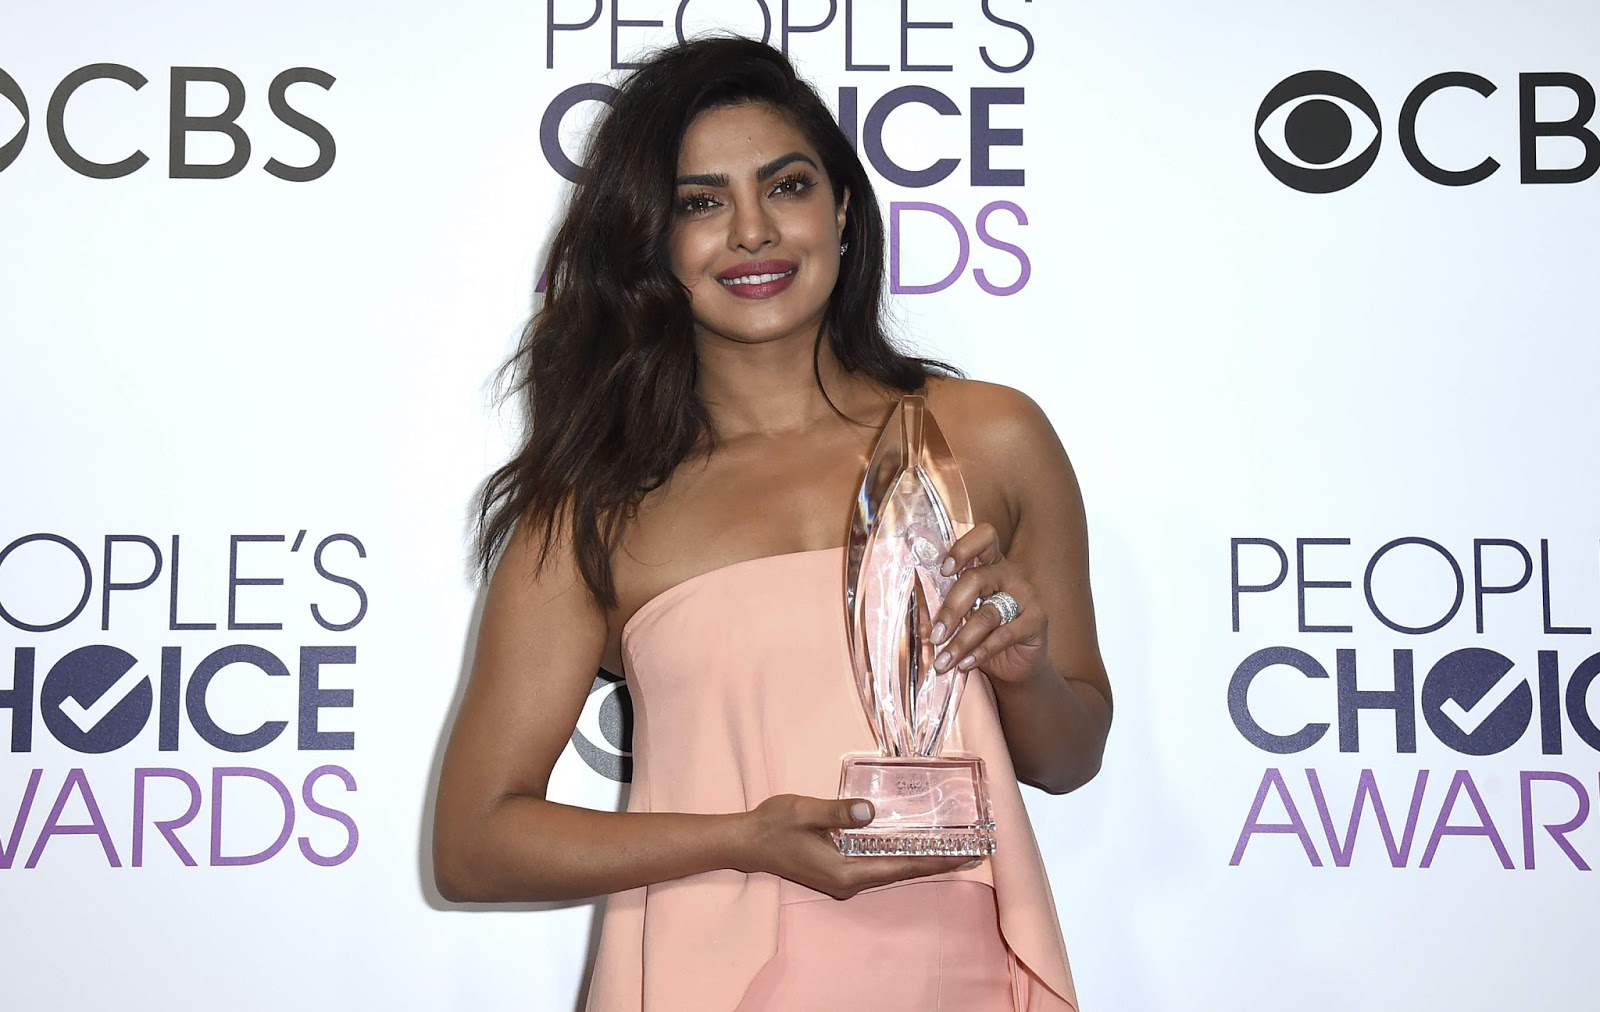 Priyanka Chopra Wins 2nd Peoples Choice Awards Images